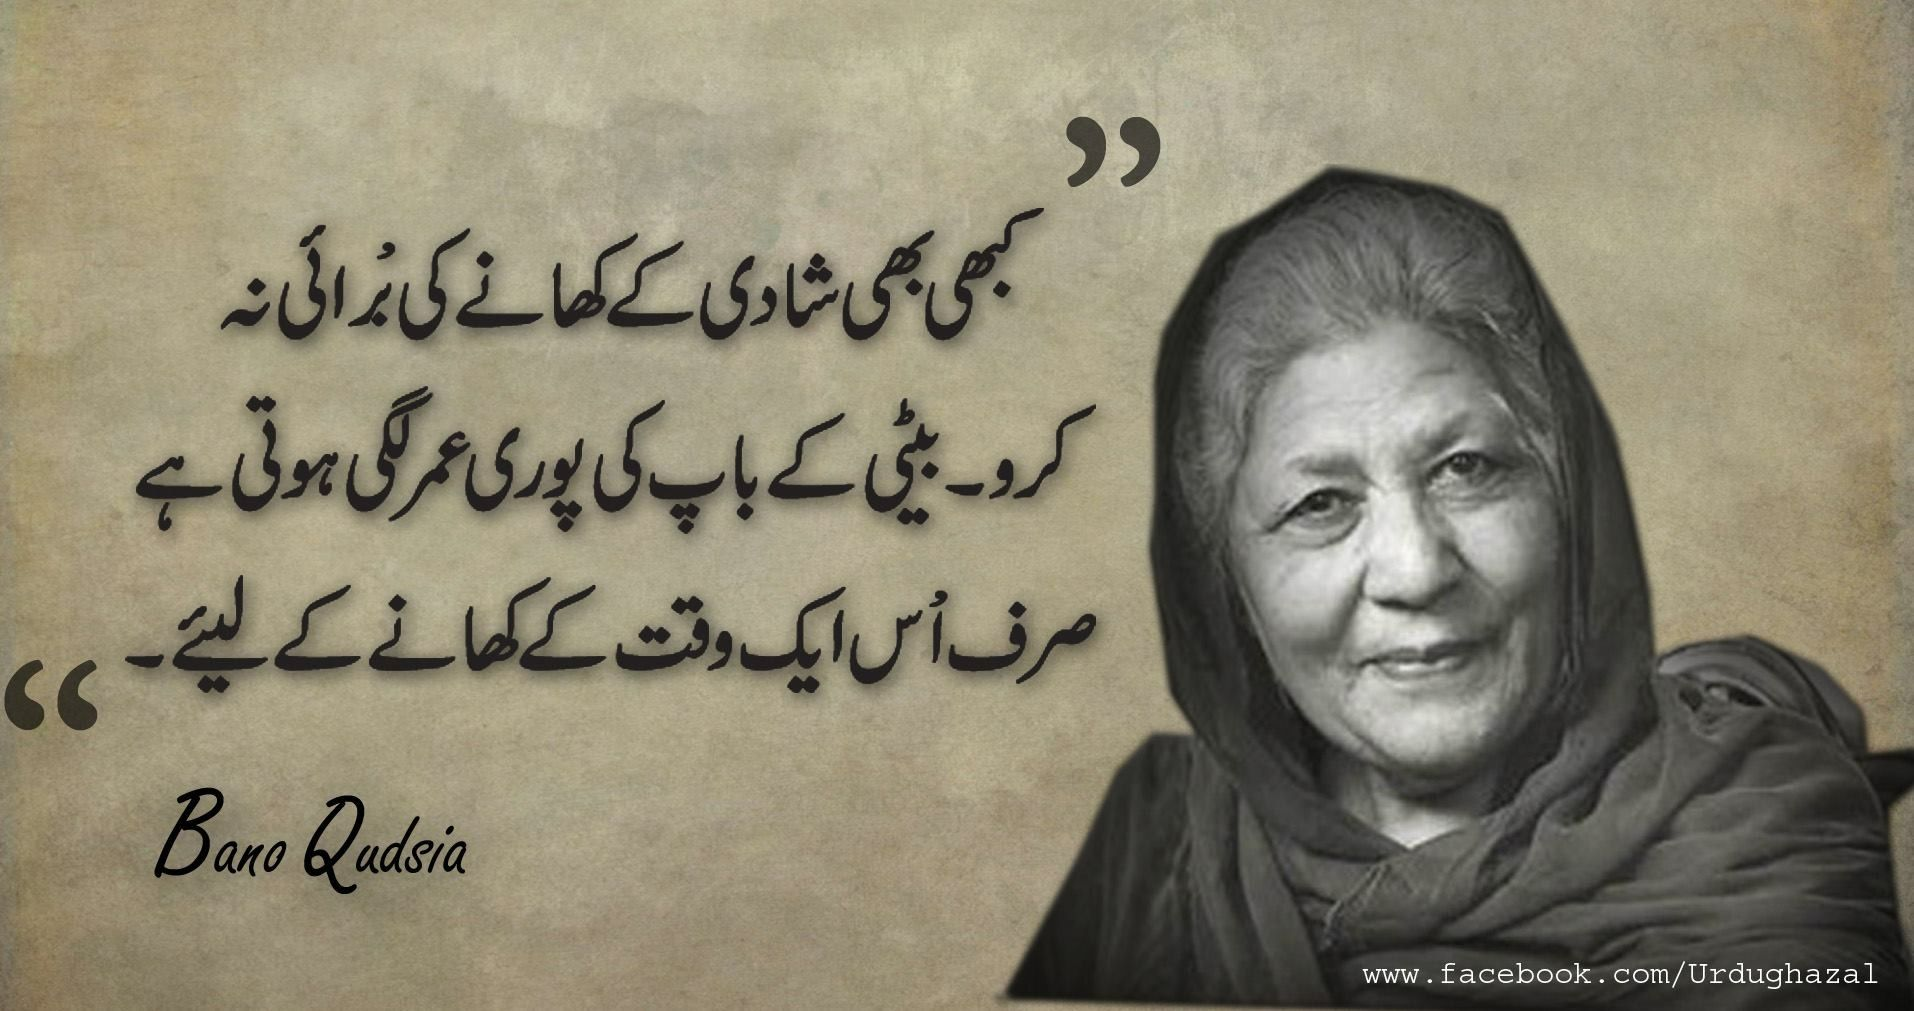 Bano Qudsia Dialogue Absolutely Heartbreaking Truth Bano Qudsia Urdu Quotes Bano